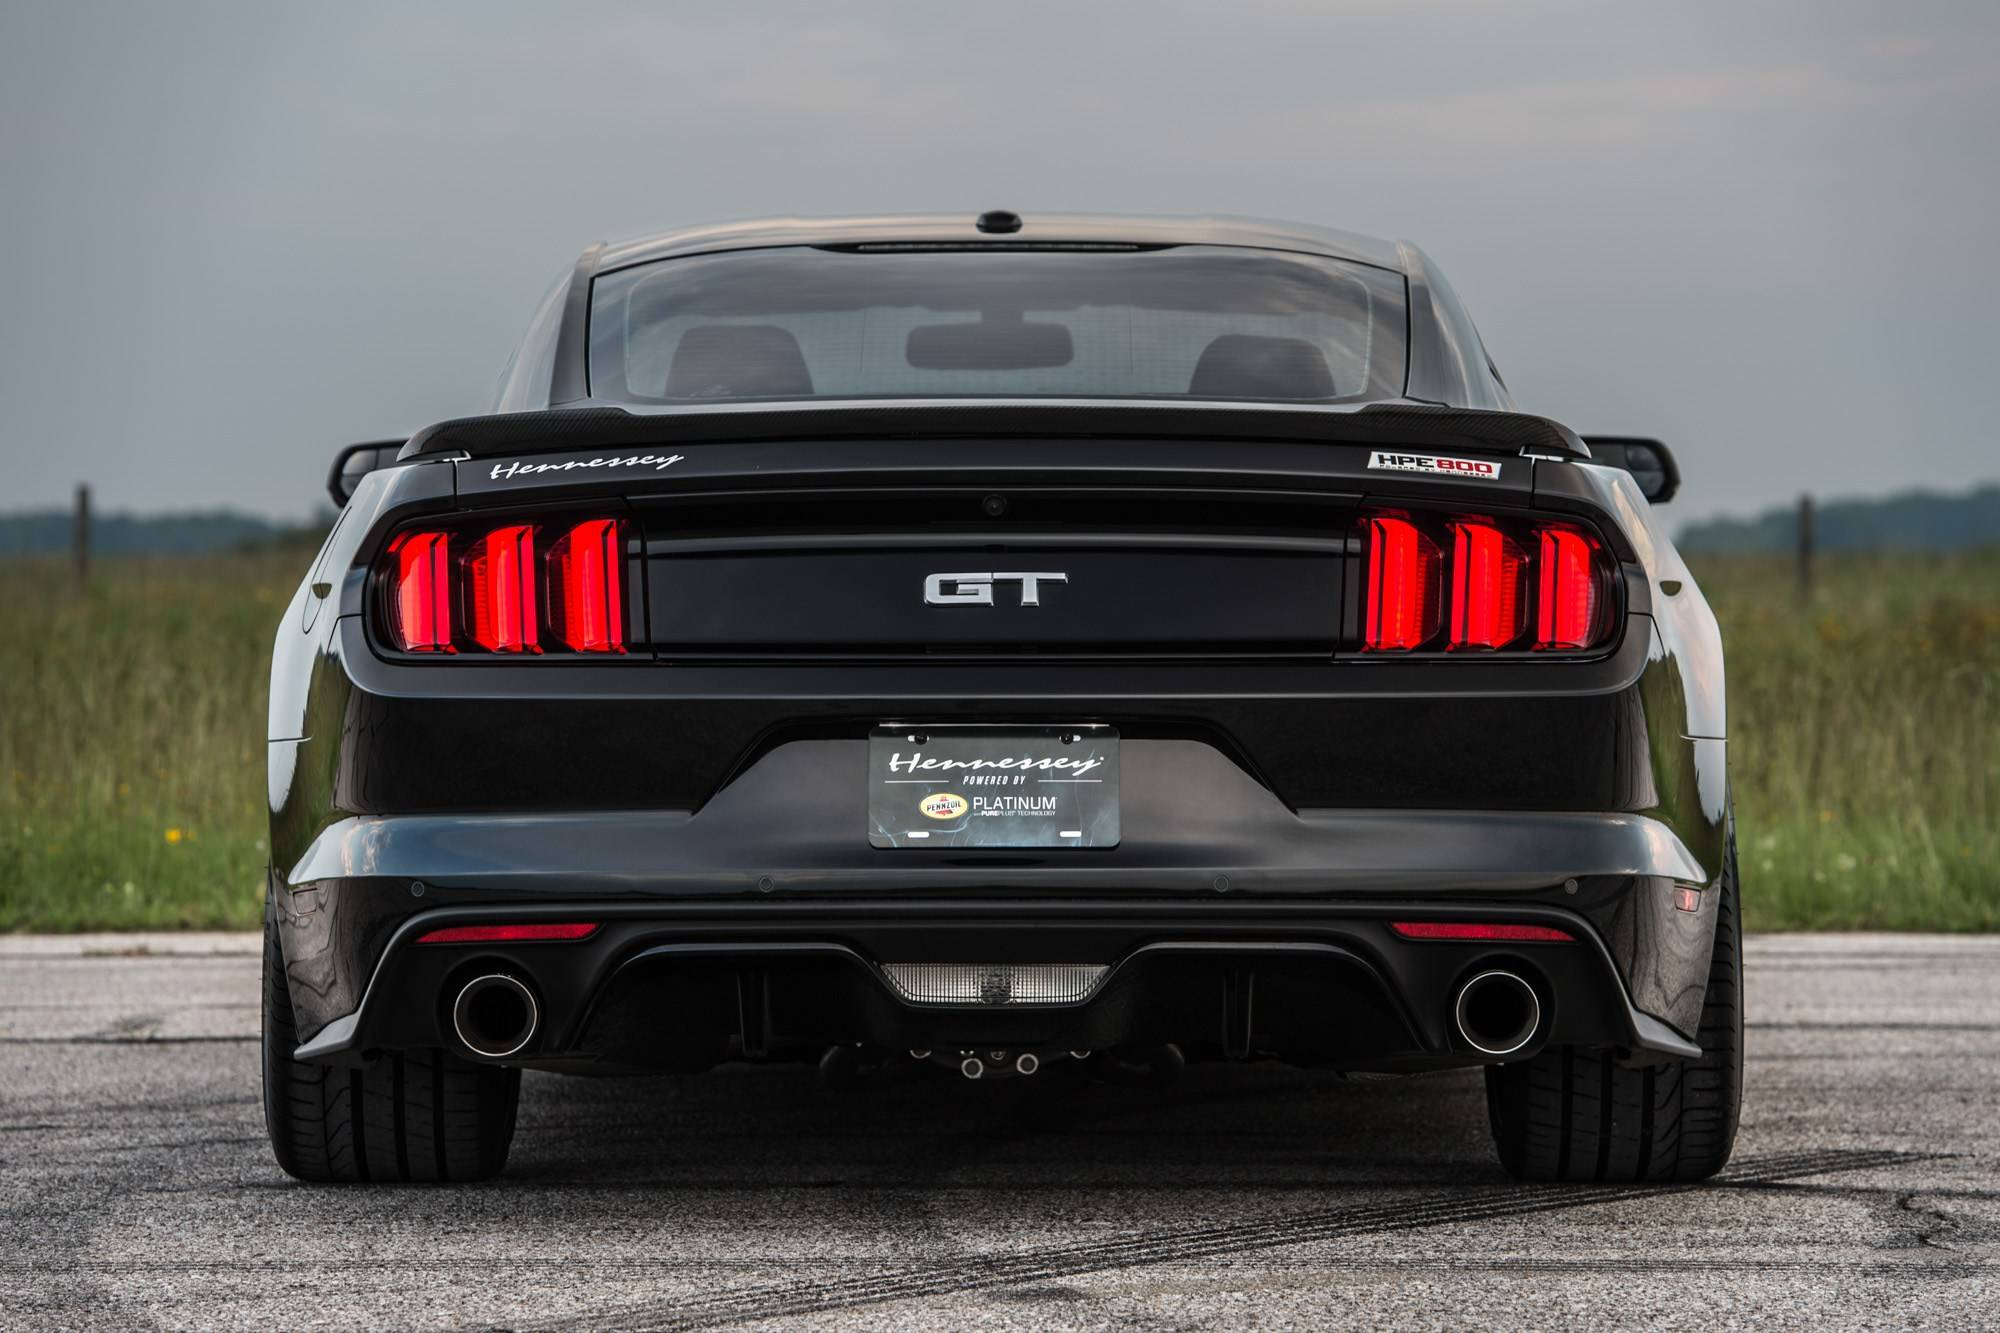 804 л.с. Hennessey HPE800 Ford Mustang - 25 Anniversary Edition